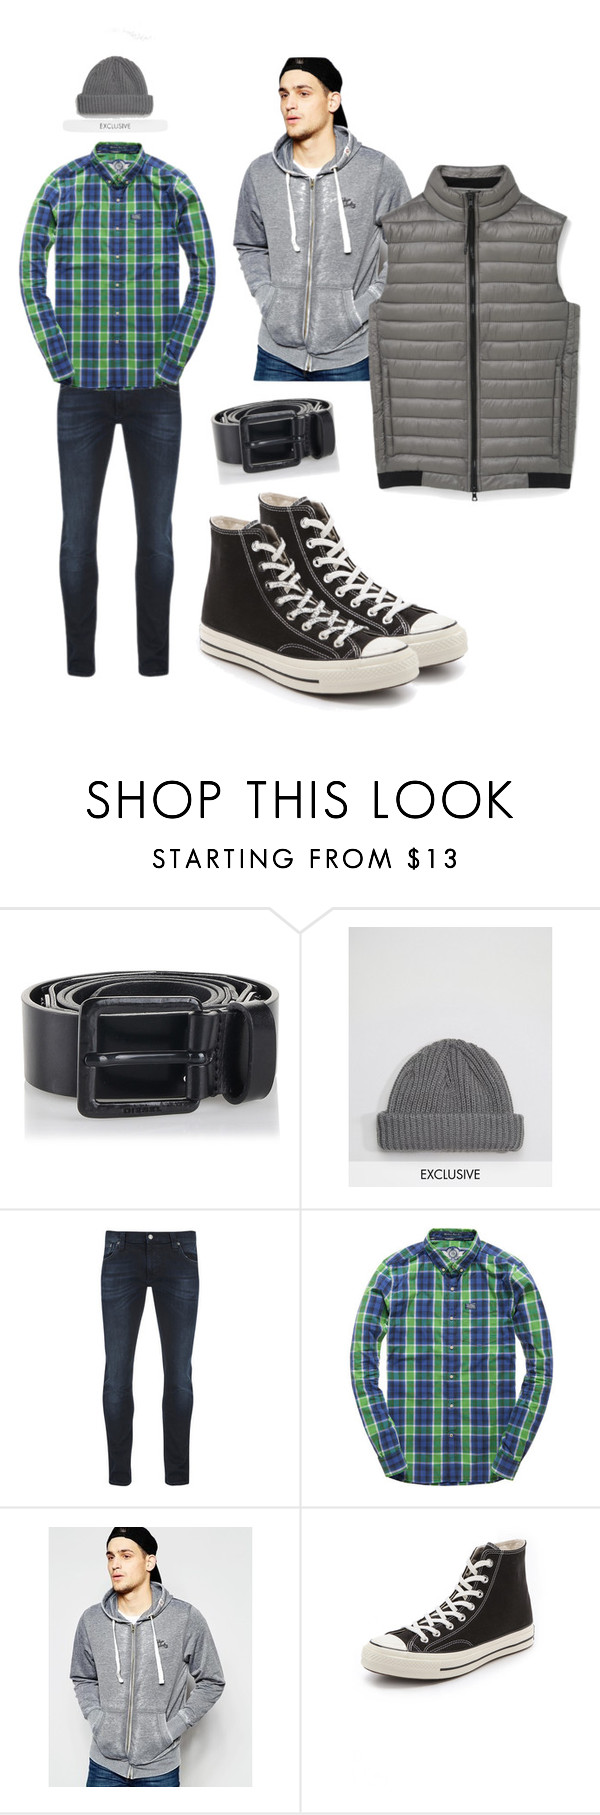 """""""~02"""" by hyperboi ❤ liked on Polyvore featuring Diesel, Reclaimed Vintage, Nudie Jeans Co., Superdry, Tokyo Laundry, Converse, MANGO MAN, men's fashion and menswear"""